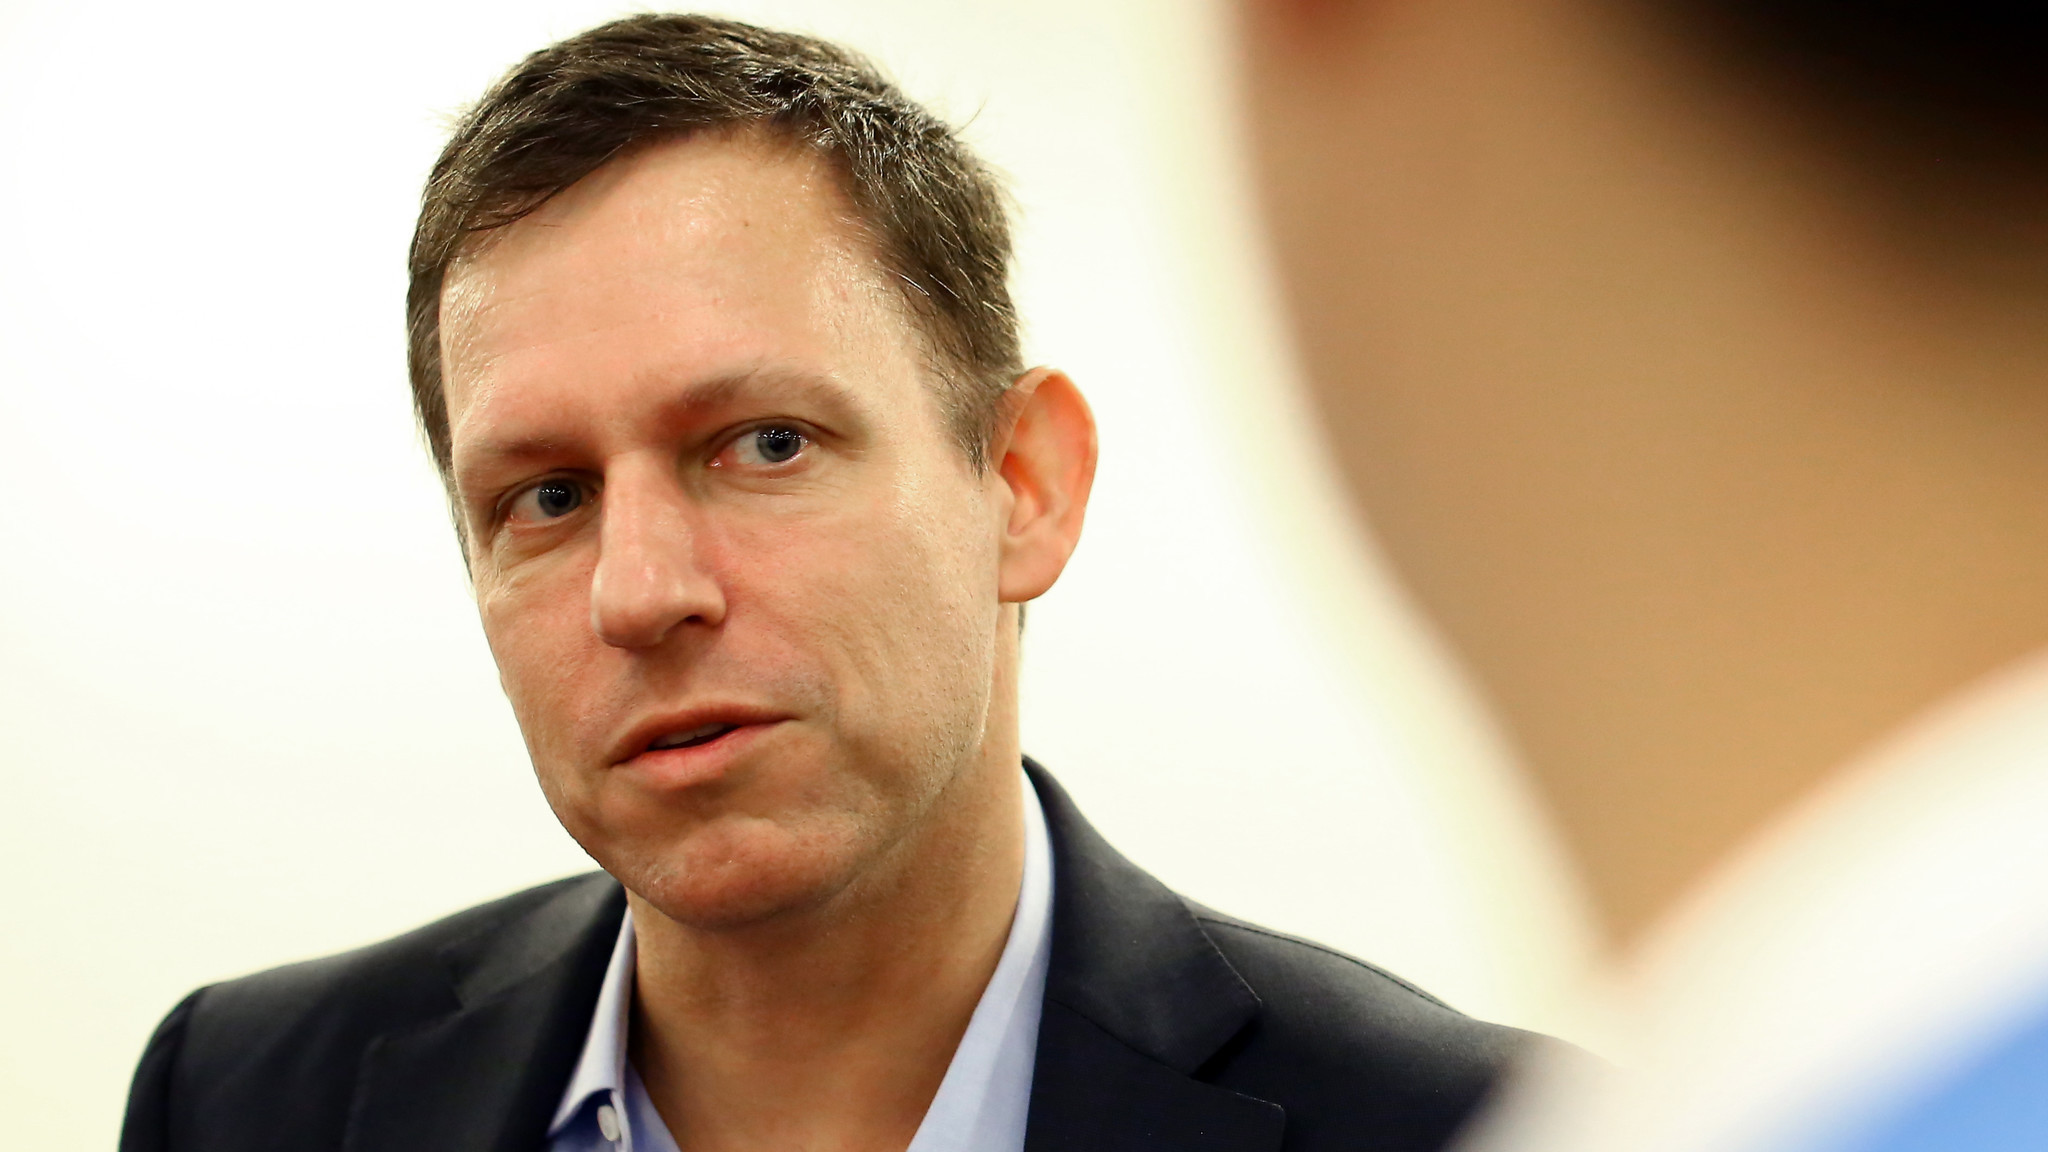 Palantir will shell out $1.7 million to resolve discrimination claims